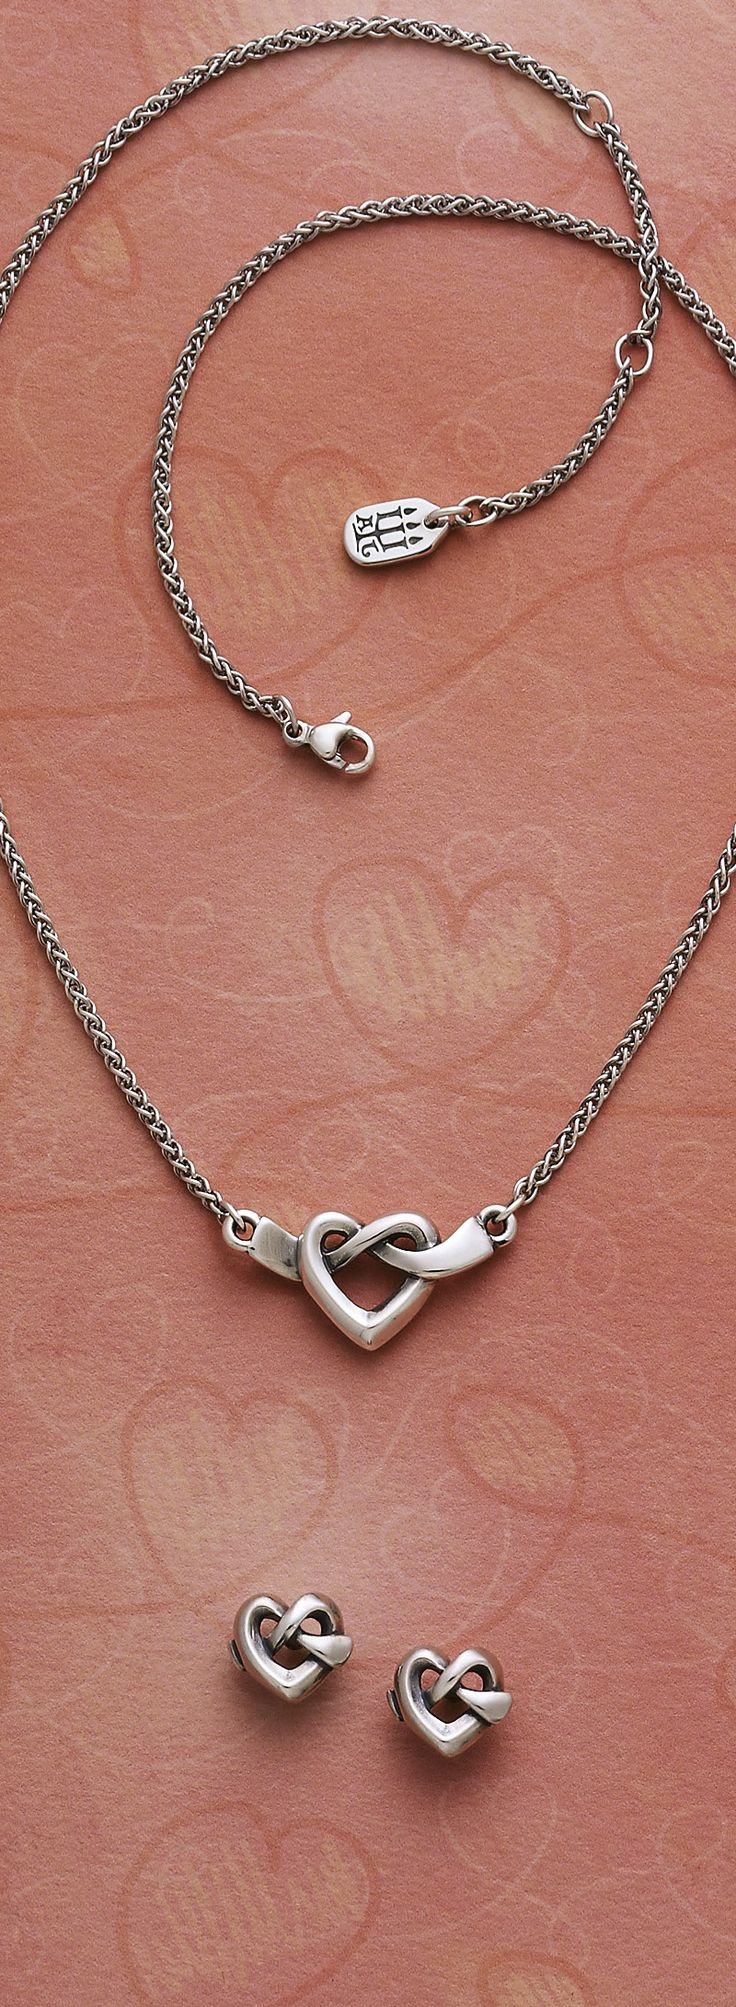 Heart Knot Necklace and Ear Posts #jamesavery